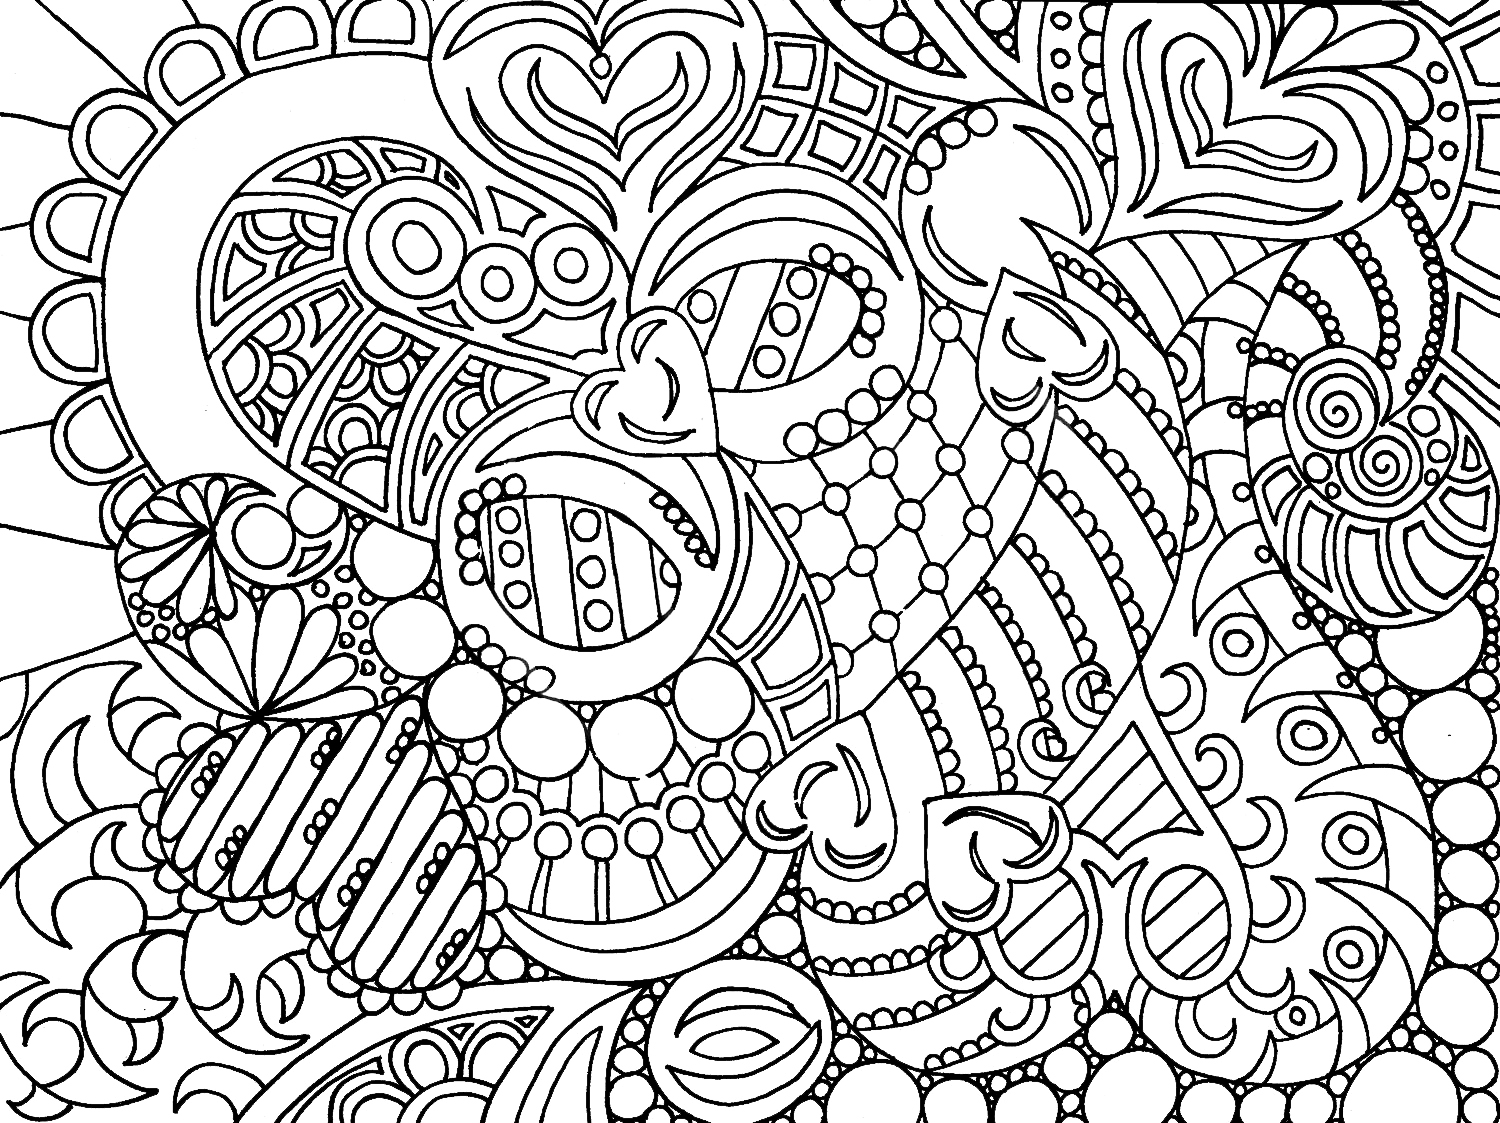 1500x1123 Coloring Pages To Print For Adults